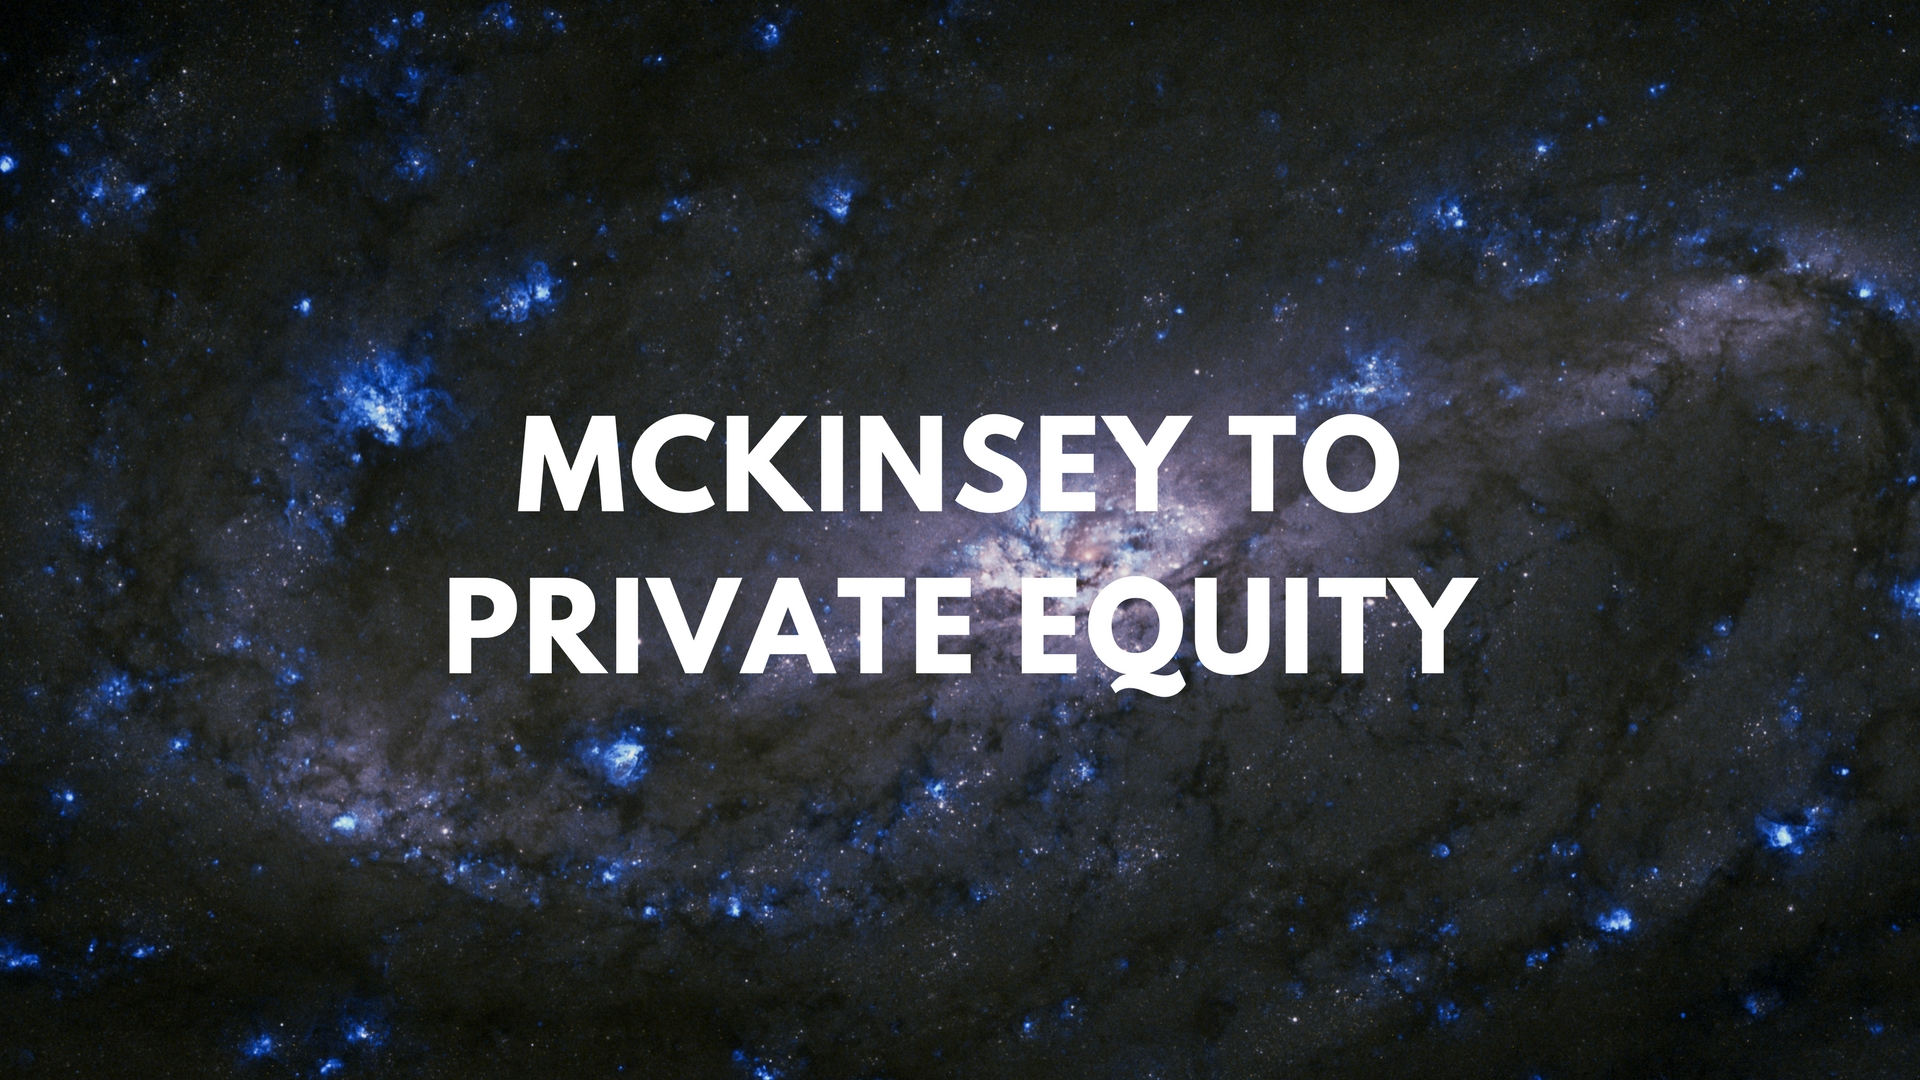 McKinsey to PE (Private Equity) - Firmsconsulting l Strategy